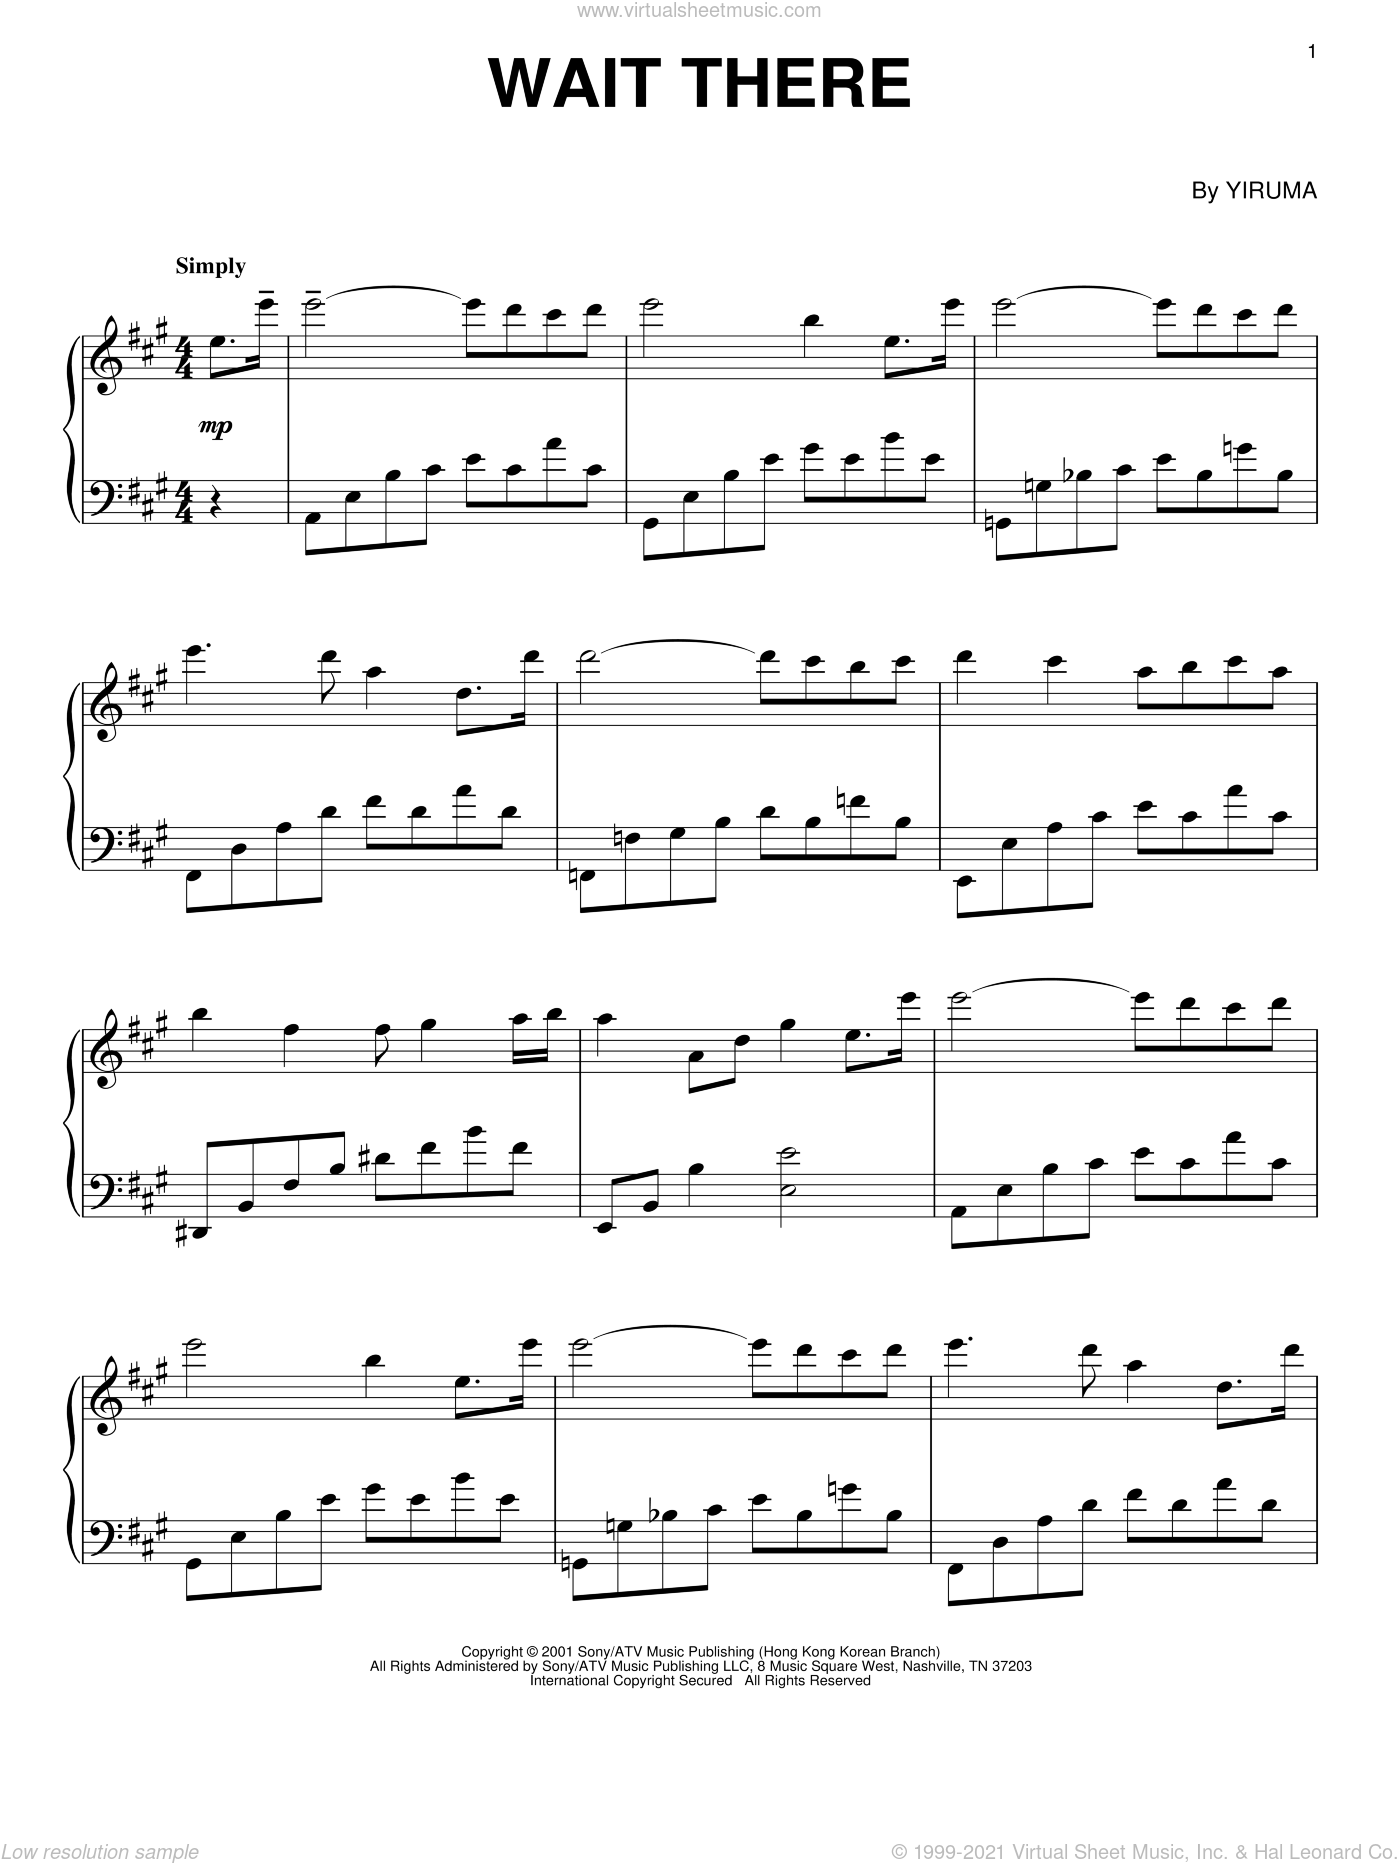 Wait There sheet music for piano solo by Yiruma, classical score, intermediate. Score Image Preview.